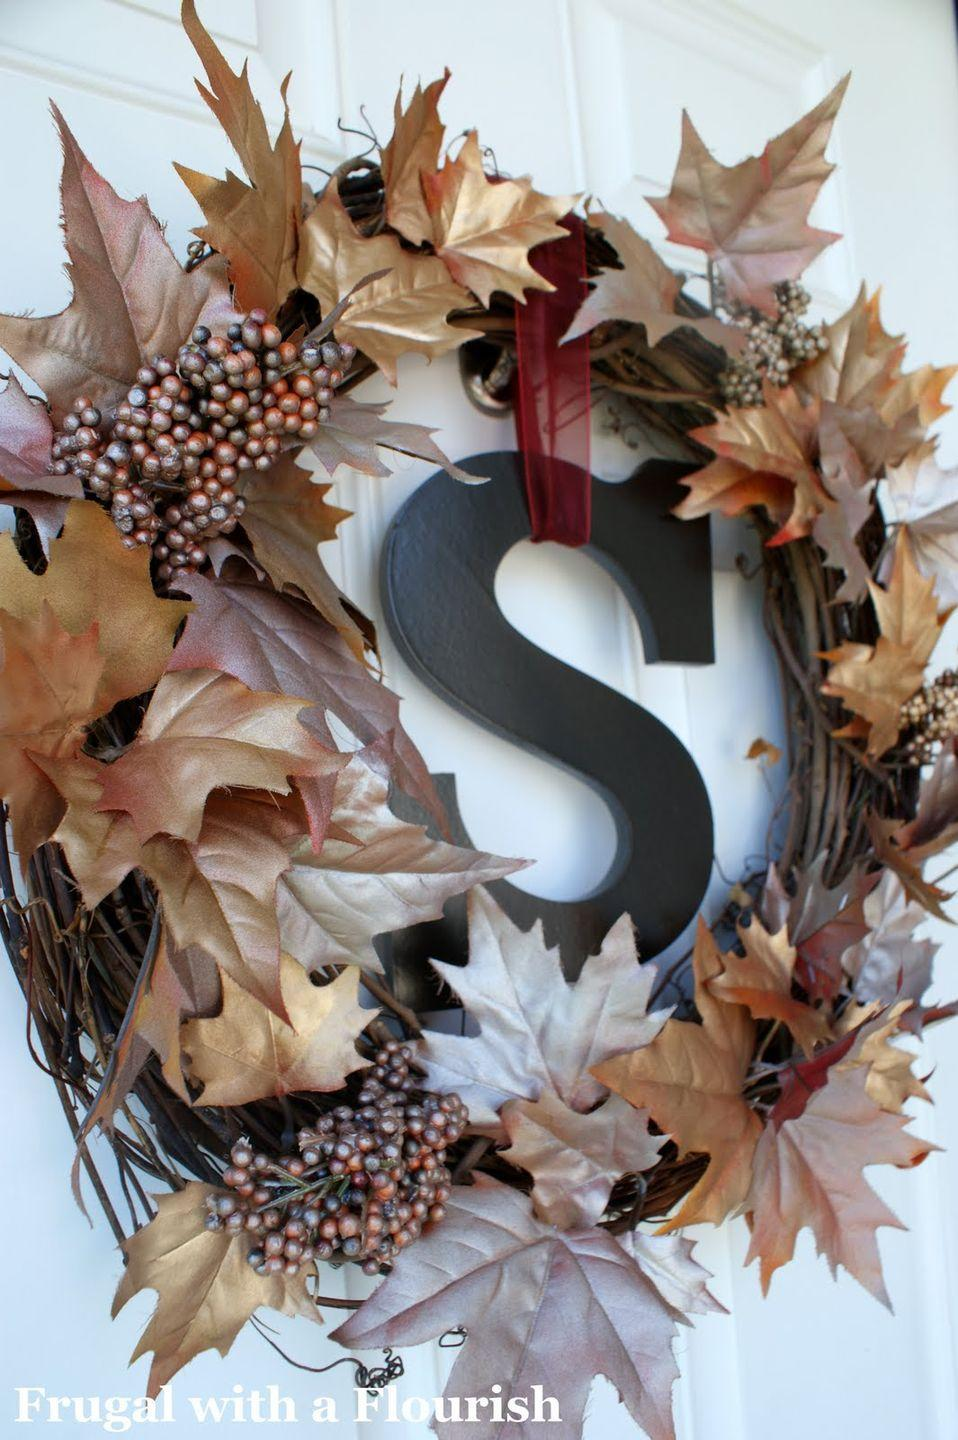 """<p>Metallic spray-paint turned bland faux leaves into a sparkling arrangement. </p><p><strong>Get the tutorial at <a href=""""http://frugalflourish.blogspot.com/2010/09/fall-wreath-with-bling.html"""" rel=""""nofollow noopener"""" target=""""_blank"""" data-ylk=""""slk:Frugal With a Flourish"""" class=""""link rapid-noclick-resp"""">Frugal With a Flourish</a>.</strong></p>"""